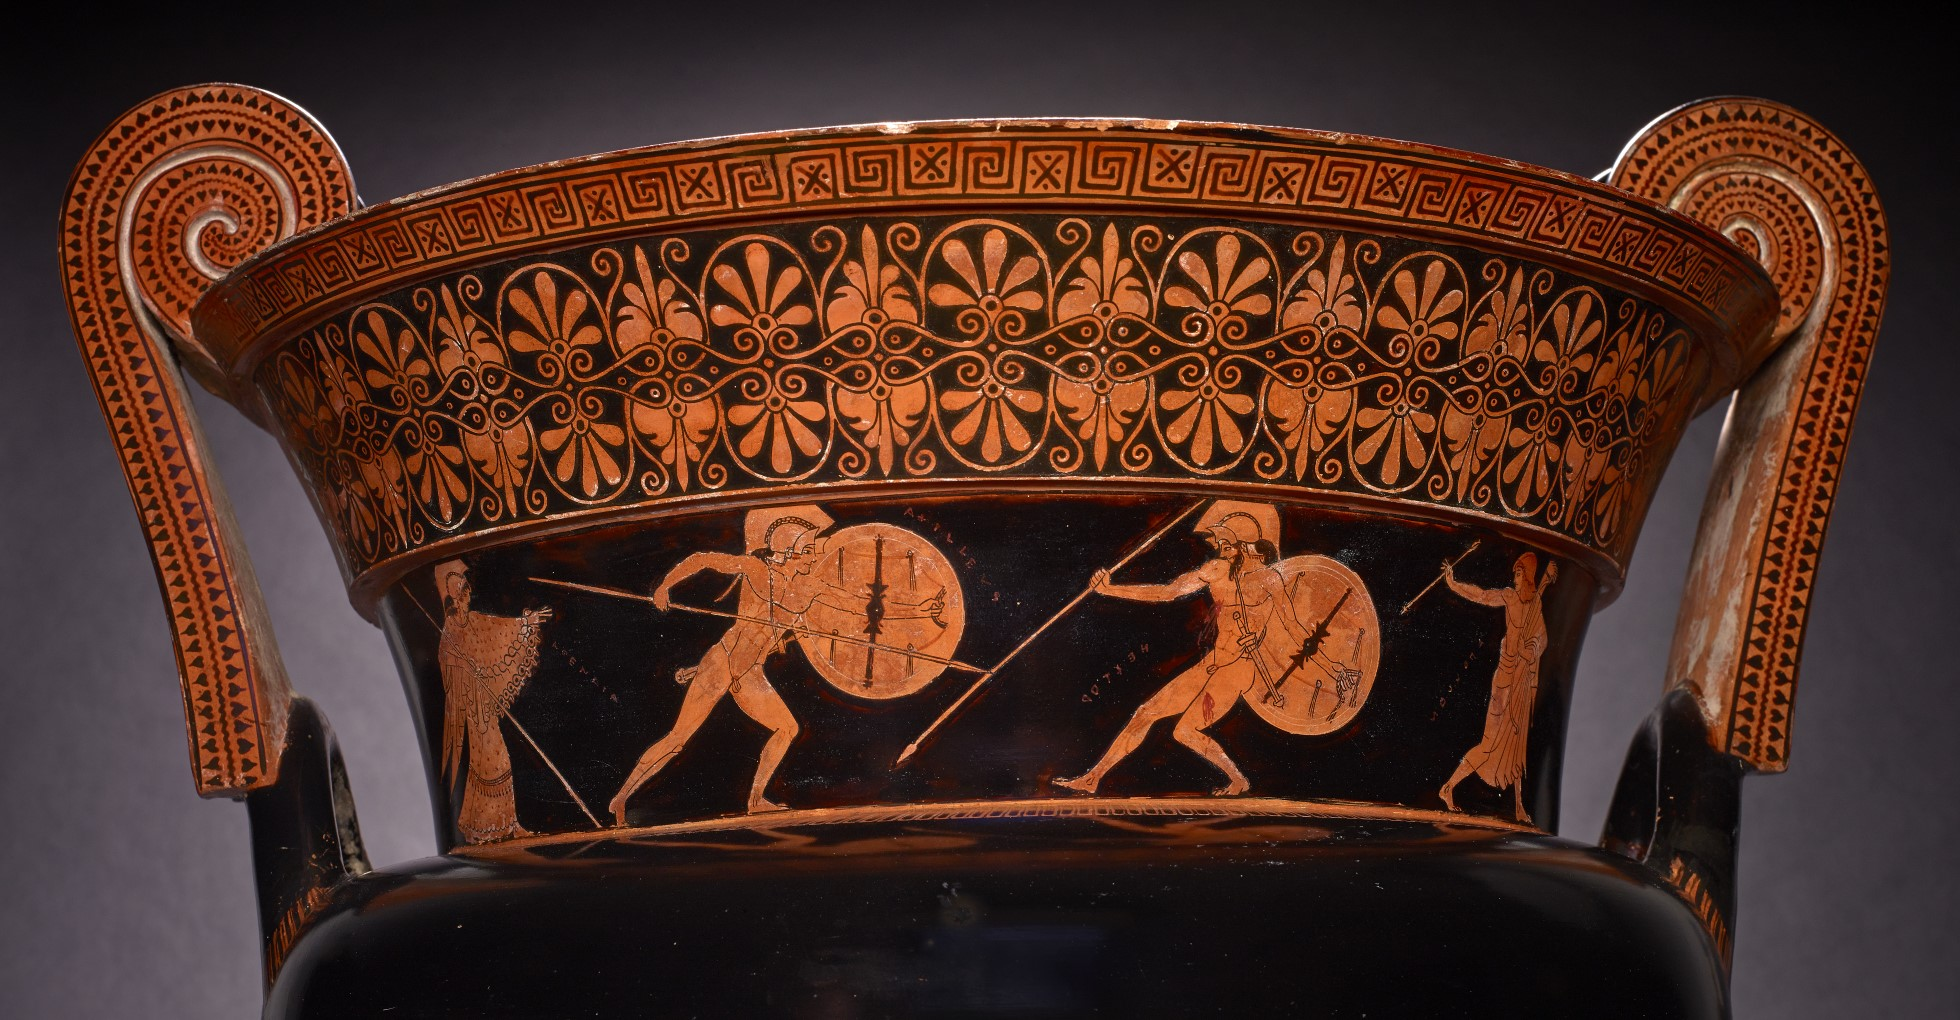 Achilles and Hector face each other in combat.